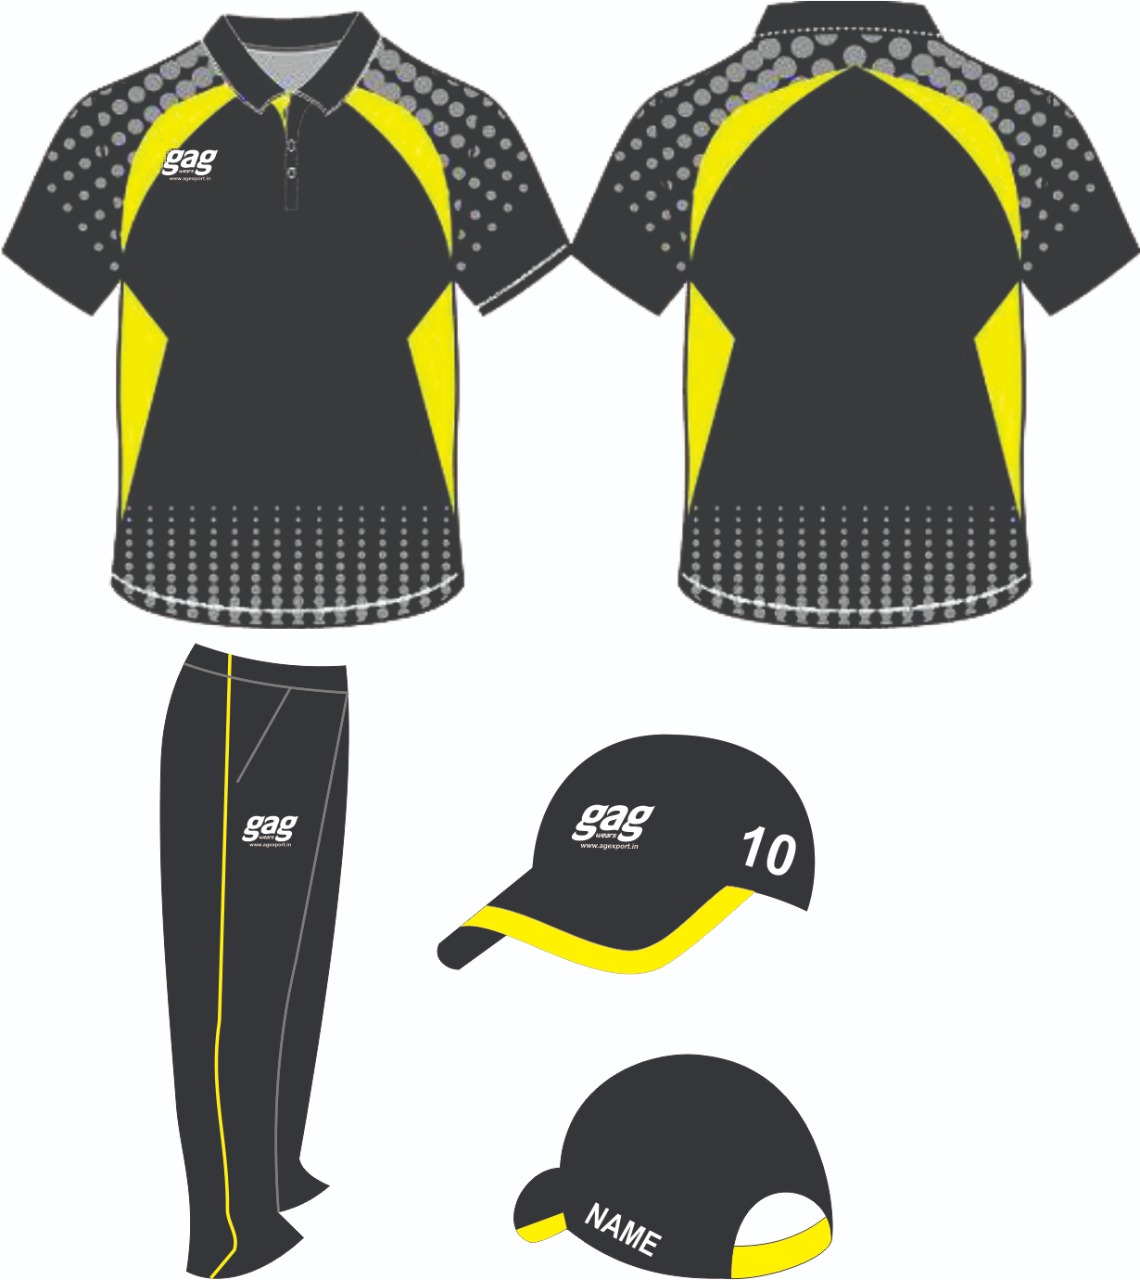 Cricket Uniform Manufacturers and Exporters in Kollam